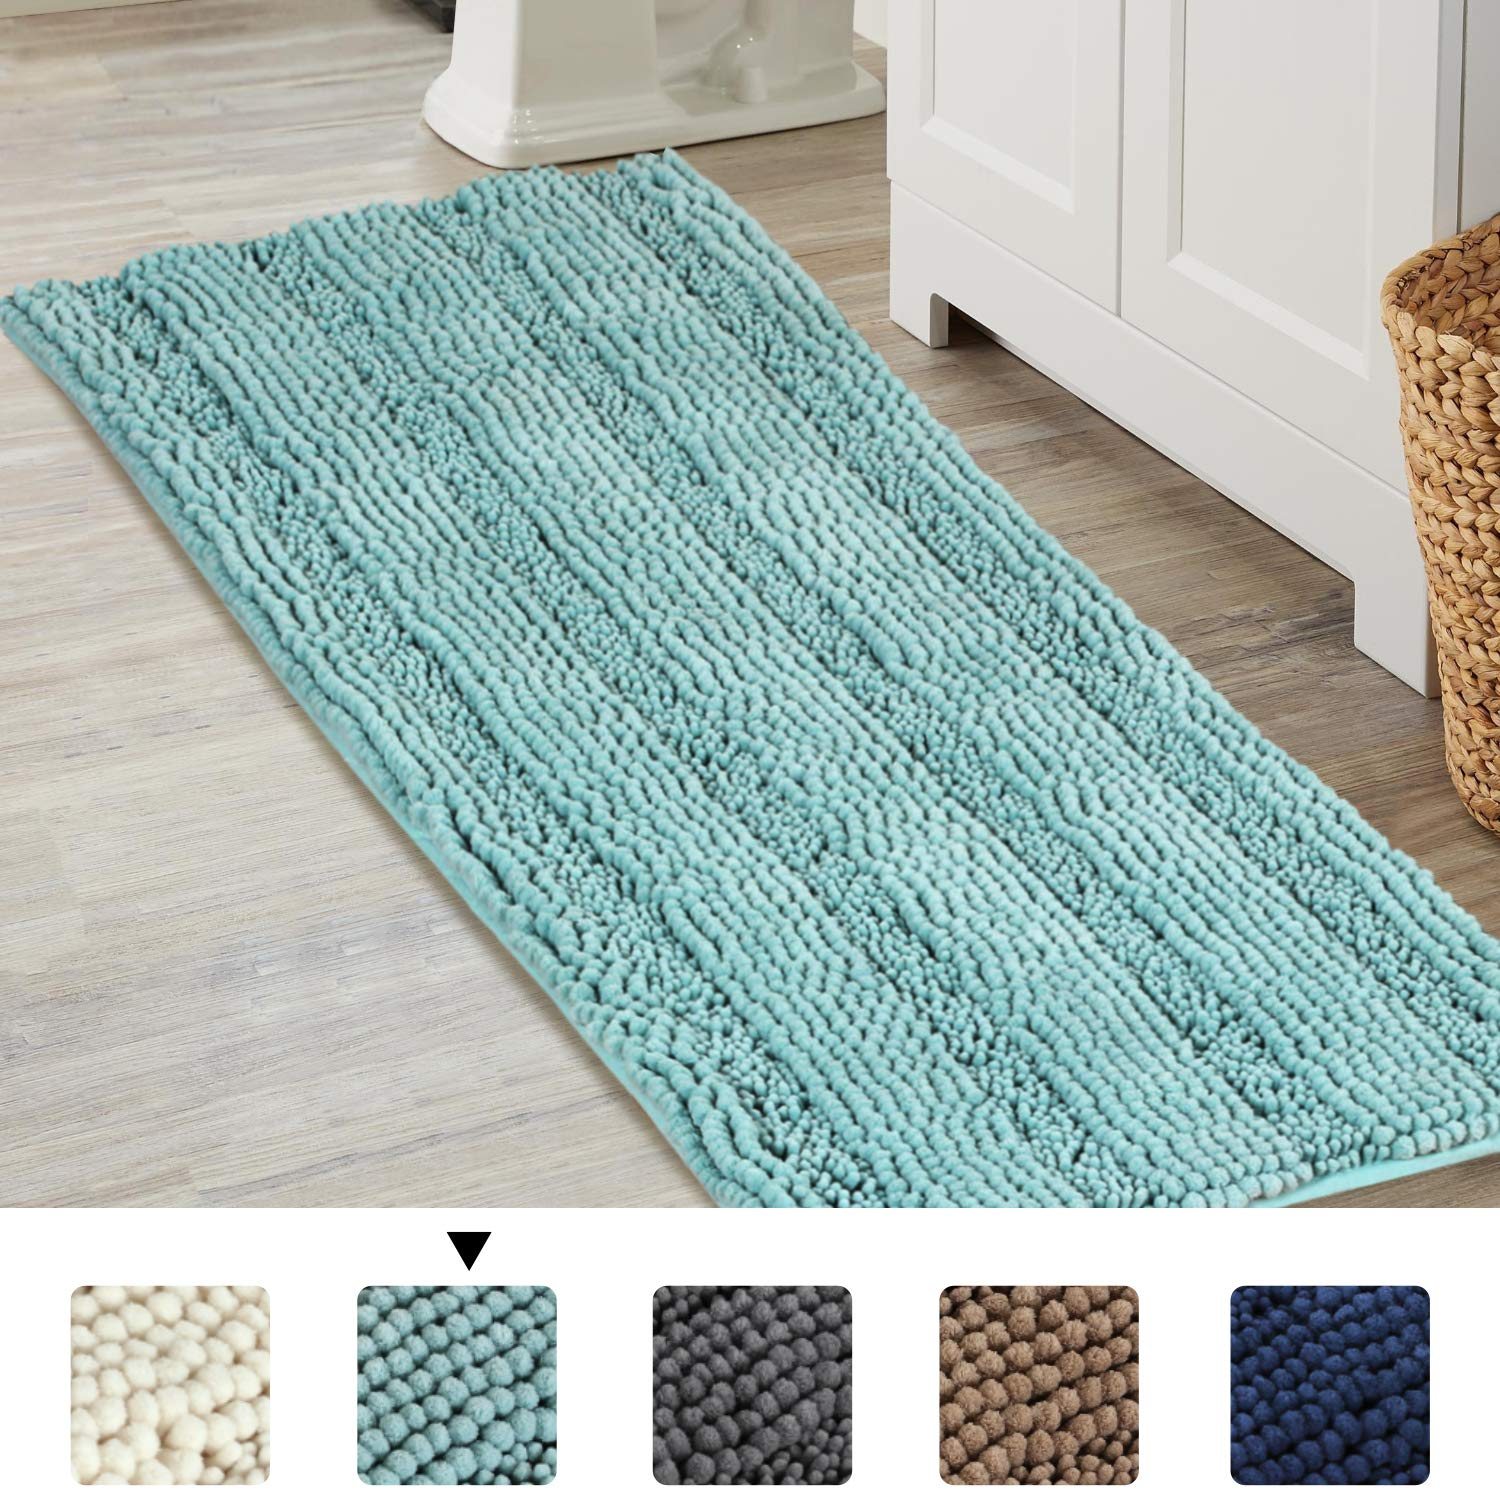 Bathroom Runner Rug Extra Long Chenille Area Rug Set Eggshell Blue Bathroom Kitchen Rug Mat Machine-Washable Bath mats Large Size 17x47 Inch, Duck Eggshell Blue